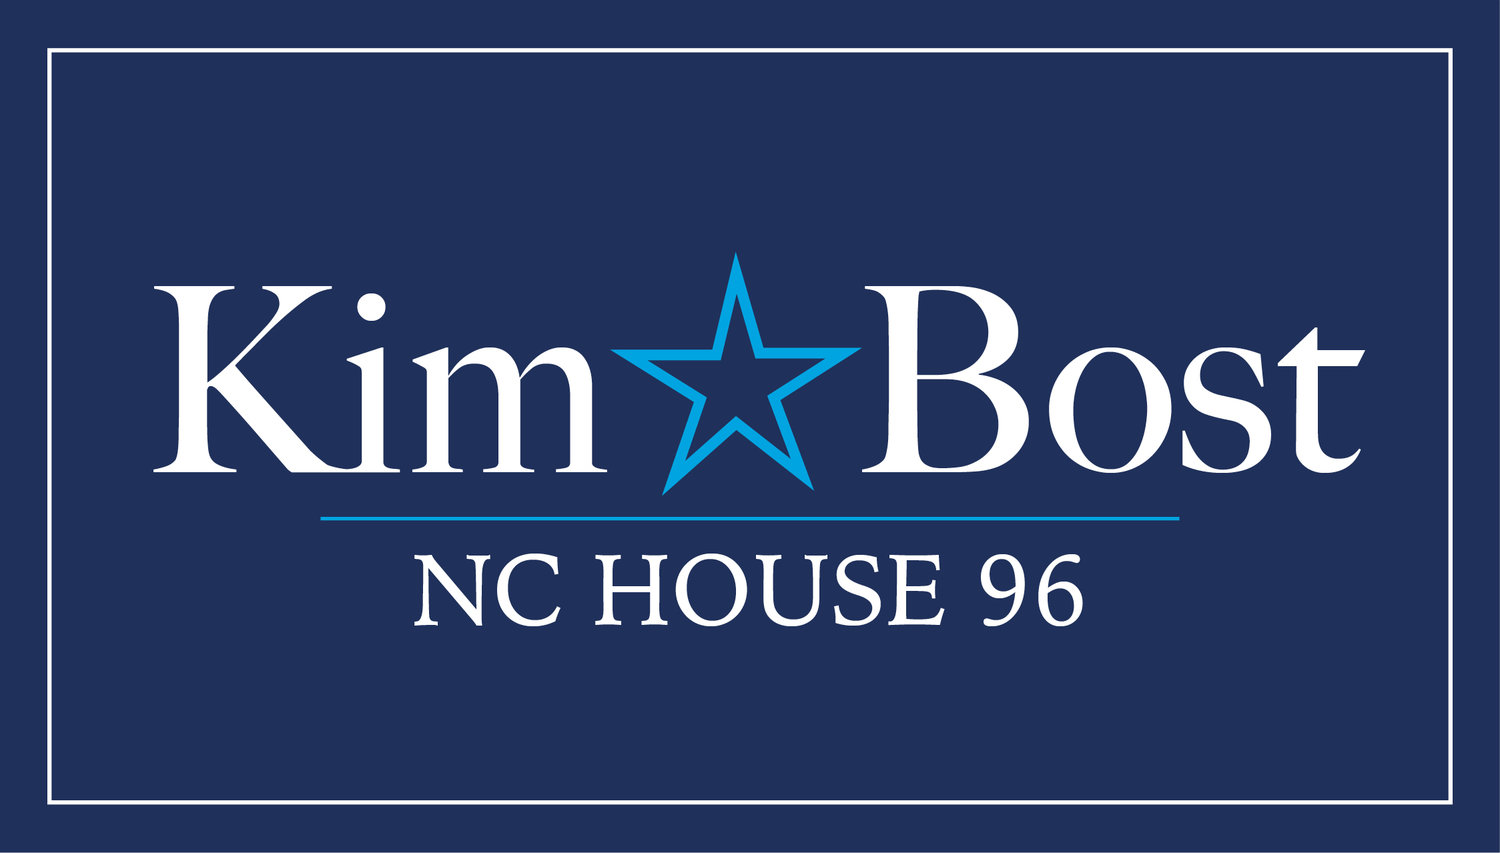 Betty Means Meet Greet Kim Bost For Nc House 96